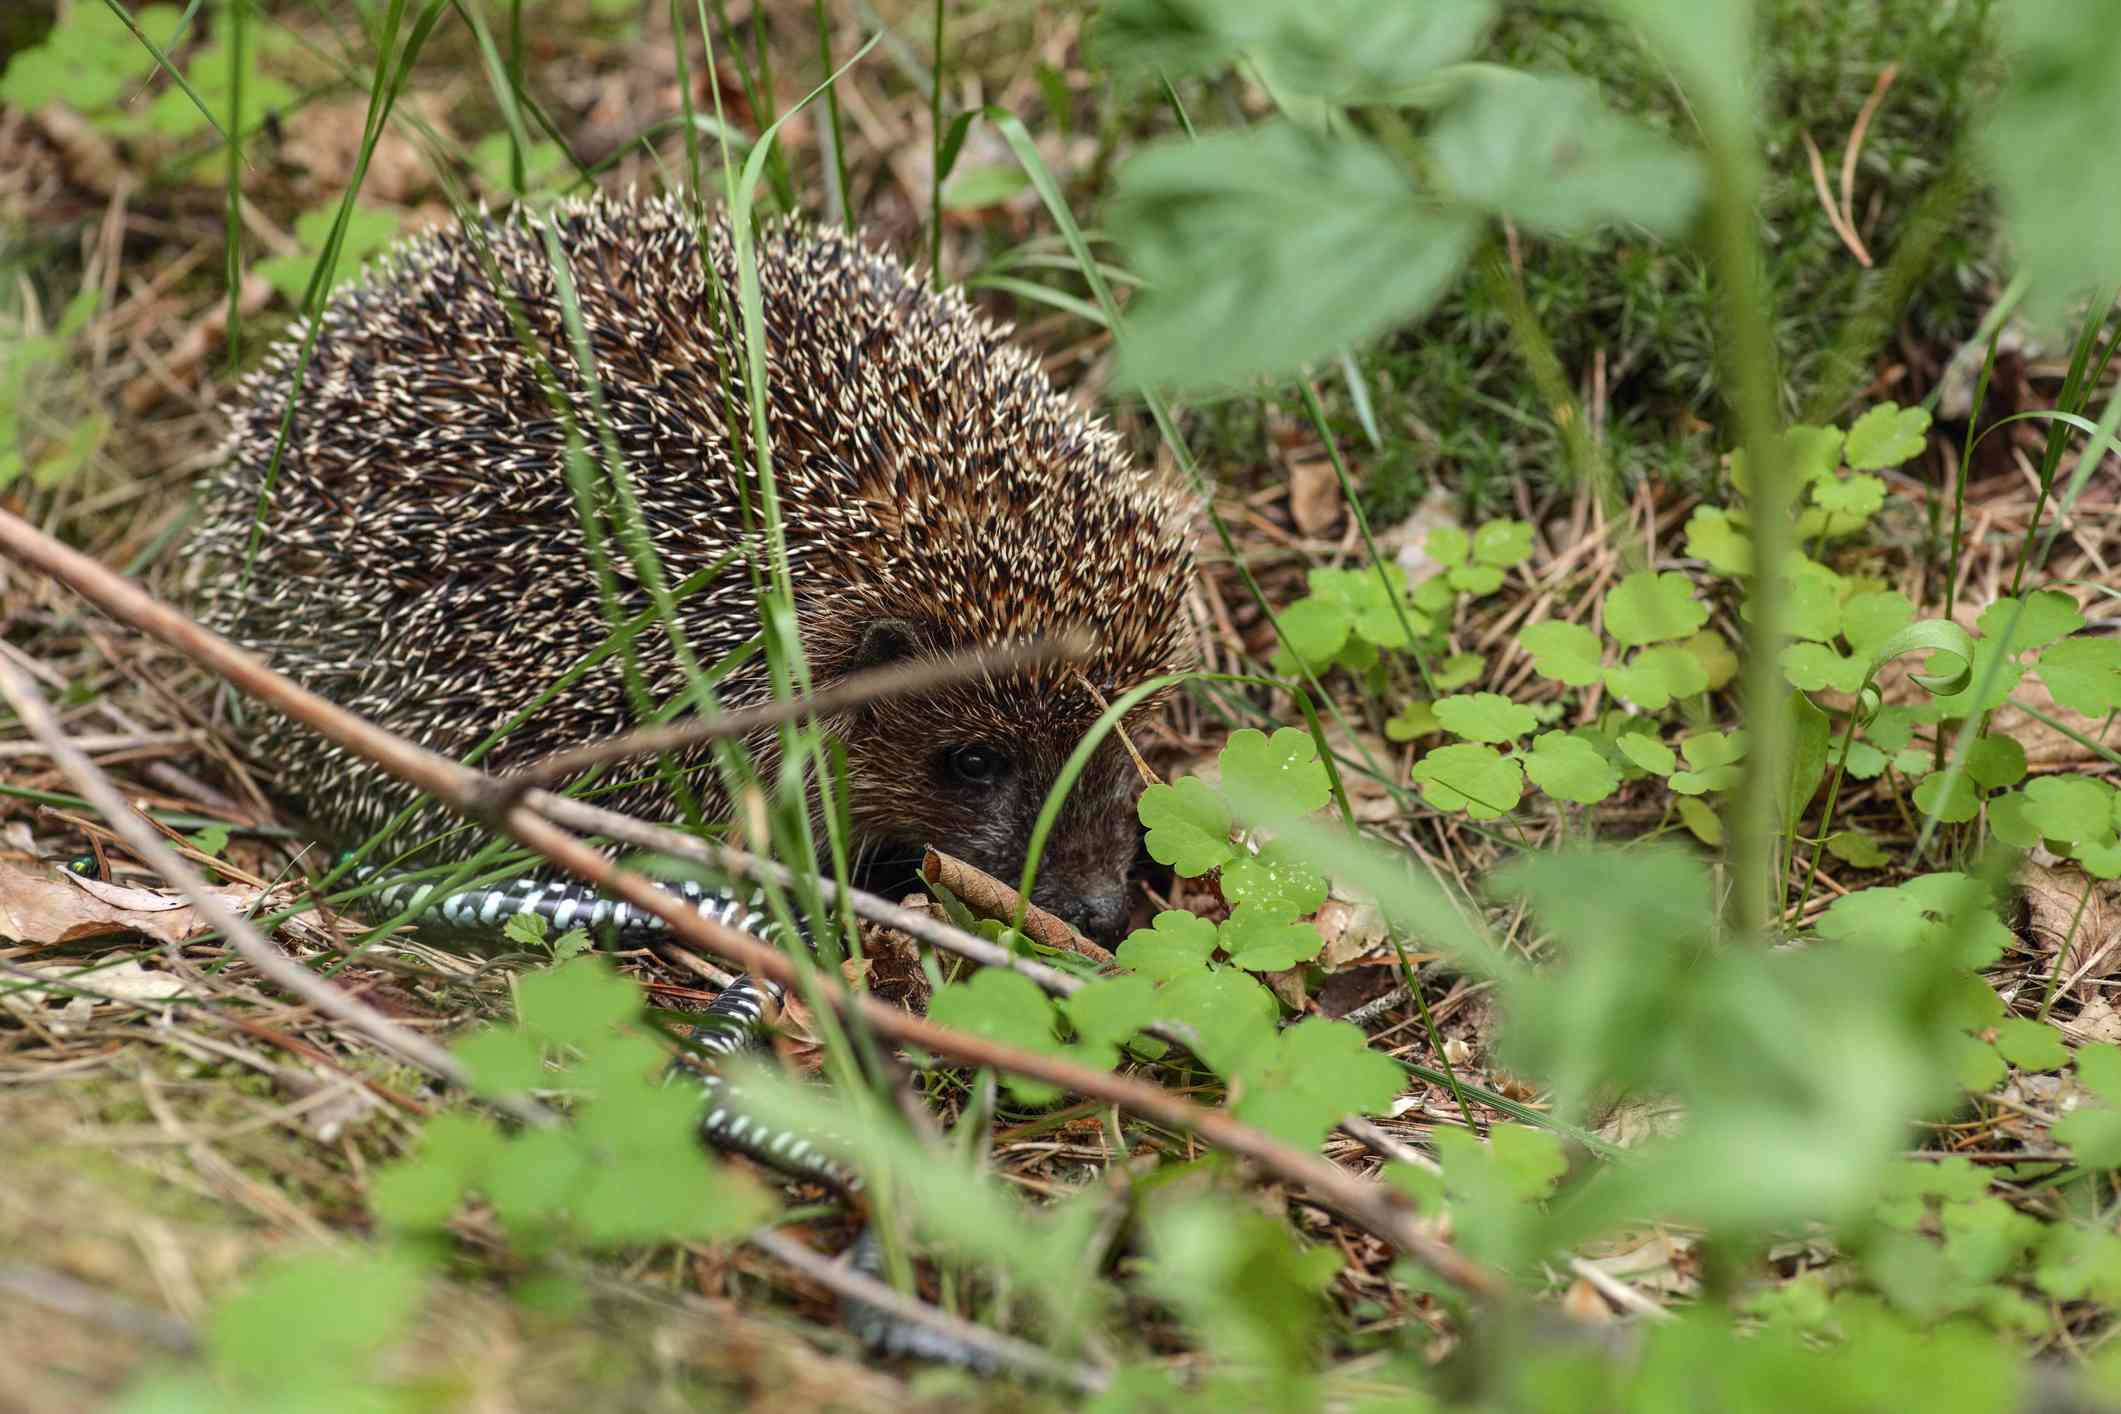 Brown hedgehog with a small black and yellow striped snake surrounded by green plants and ground cover